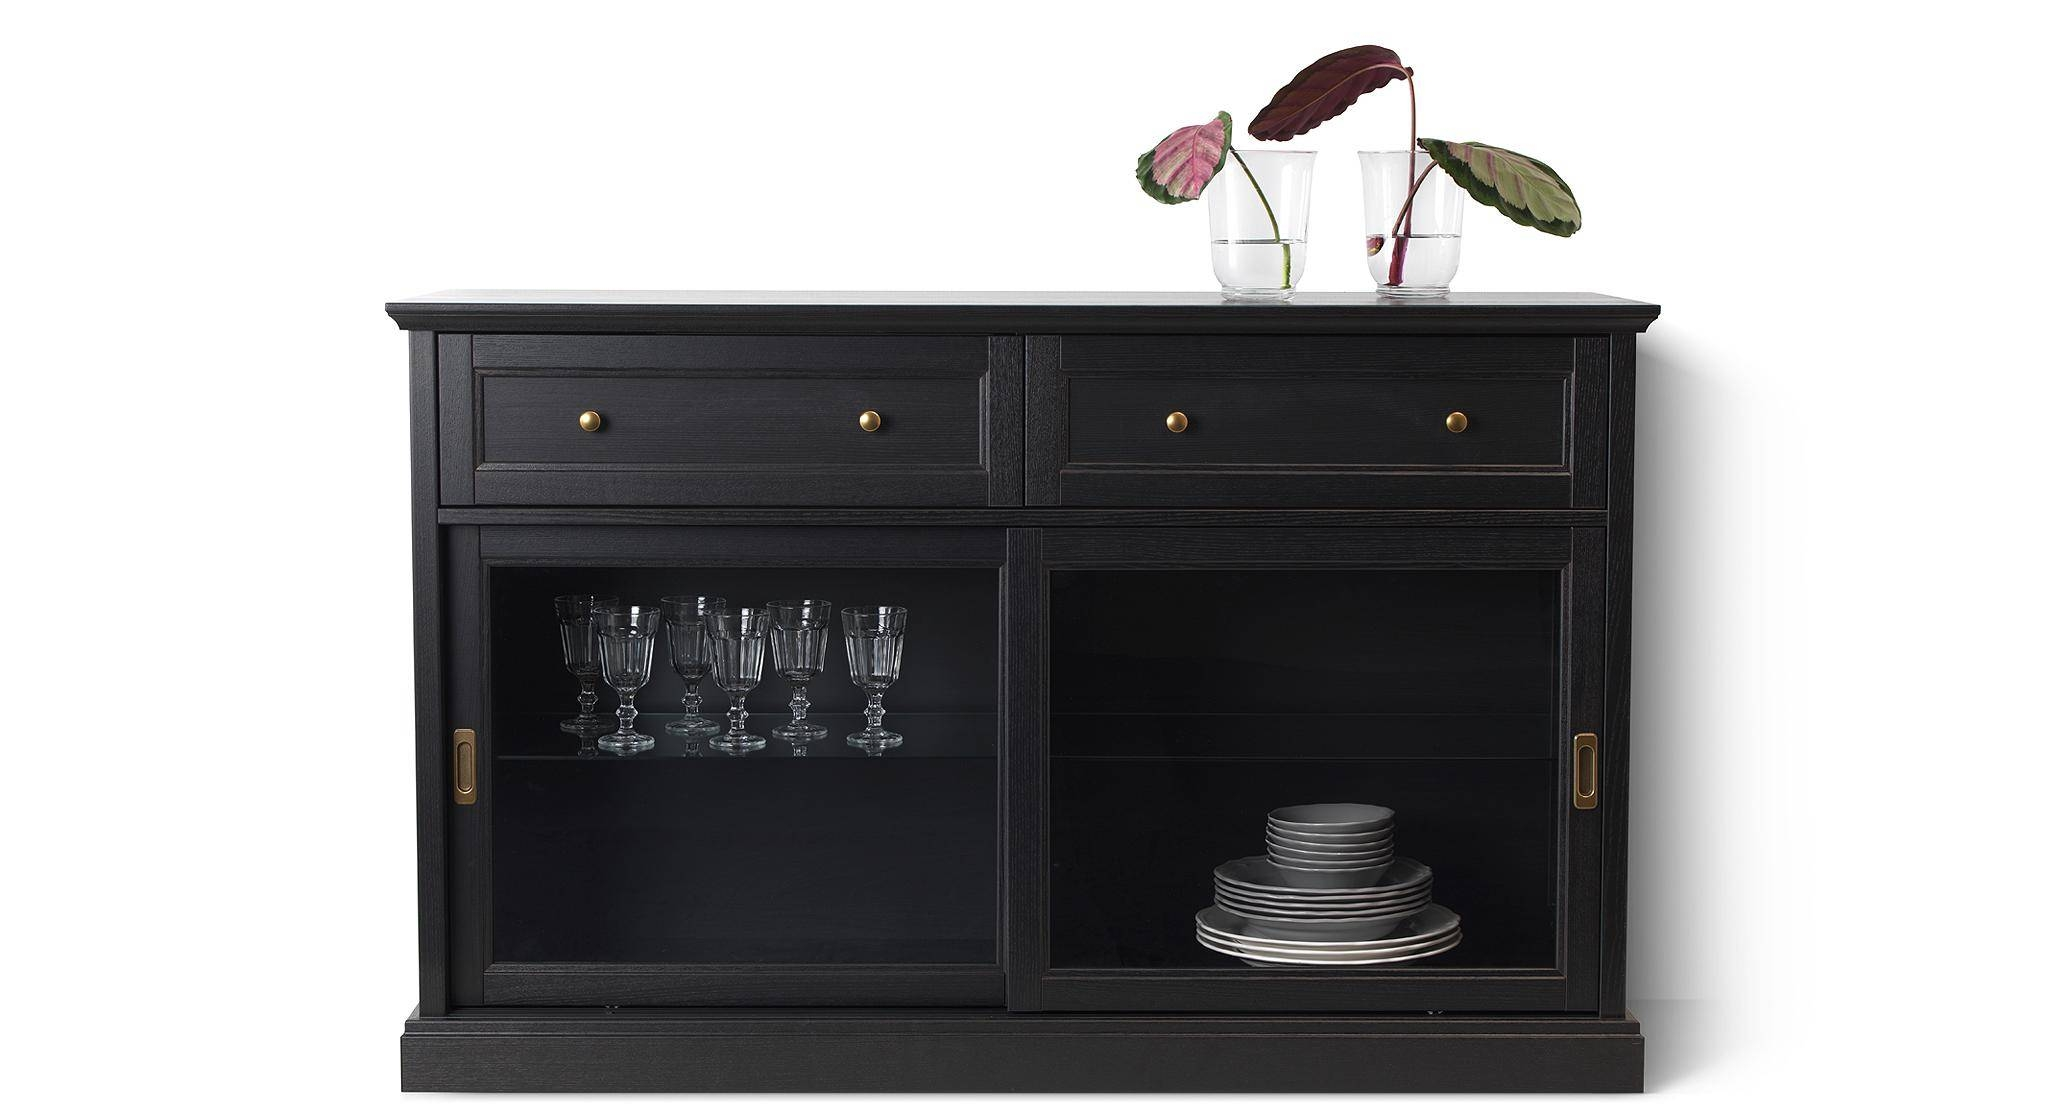 Storage Cabinets & Storage Cupboards | Ikea Ireland intended for Sideboards With Glass Doors and Drawers (Image 15 of 15)